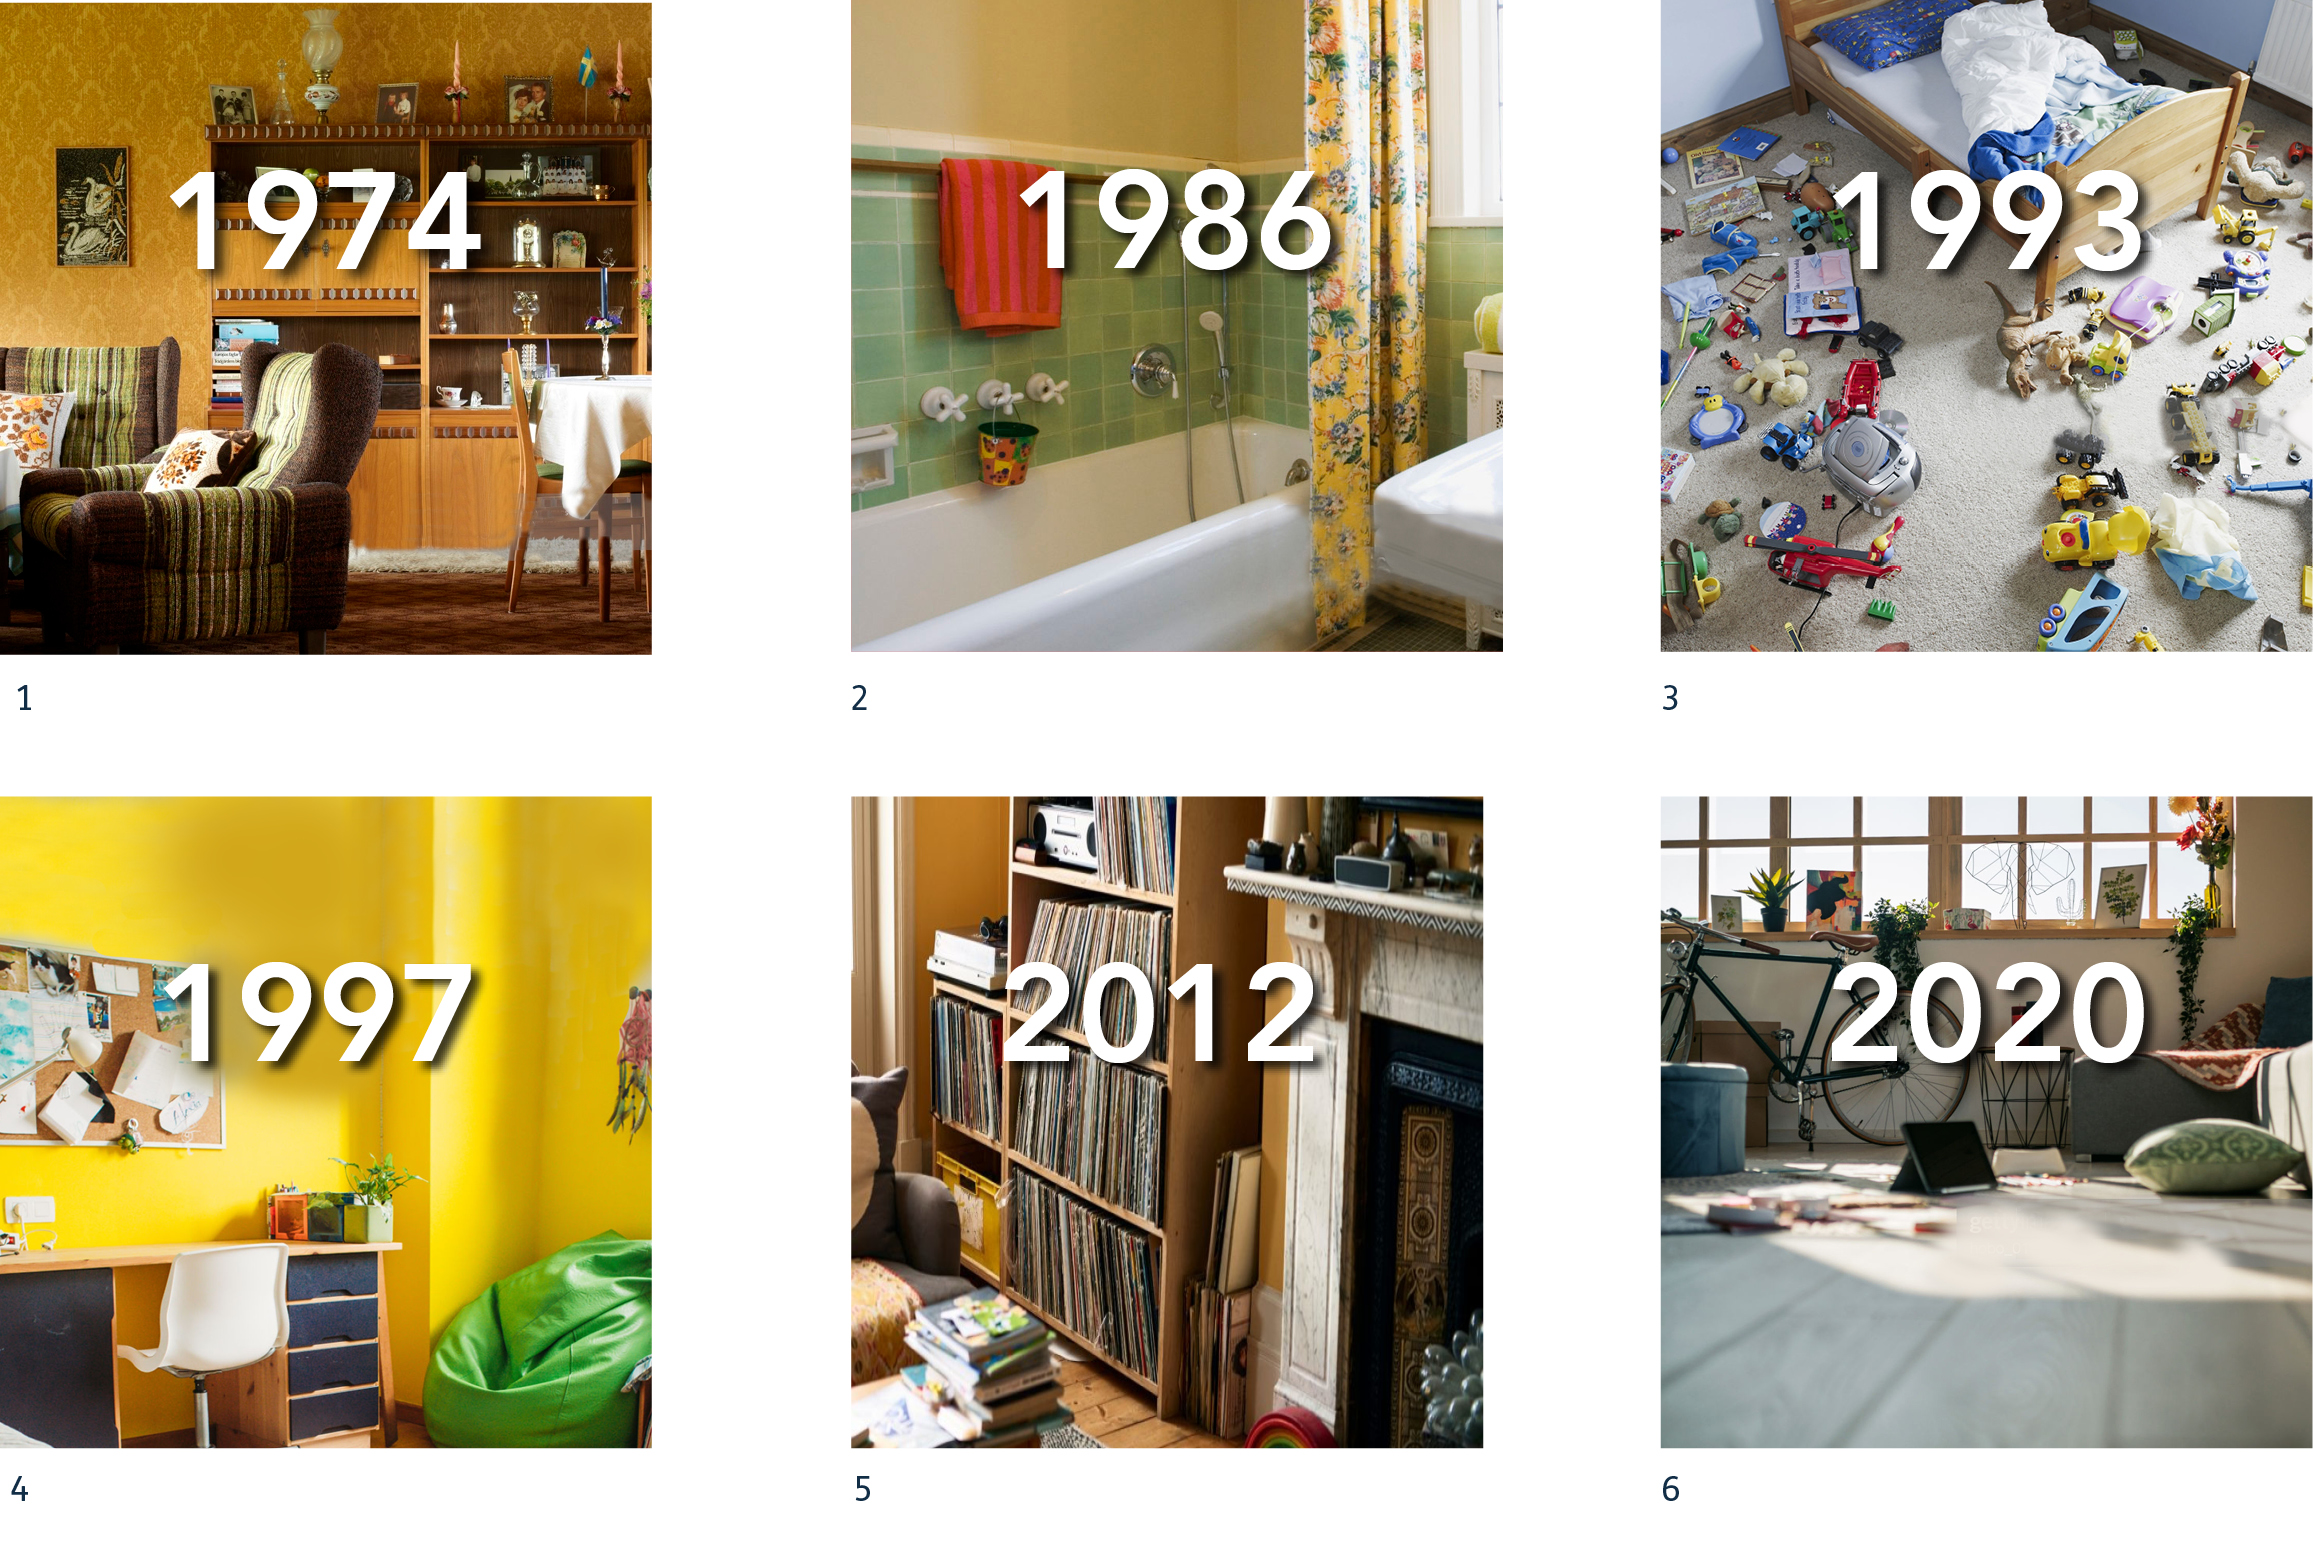 Storyboard of photographs showing different household rooms with the year overlaid on the image. In order: a lounge from 1974, a bathroom from 1986, a child's bedroom from 1993, a home study from 1997, a lounge from 2012 and a lounge from 2020.